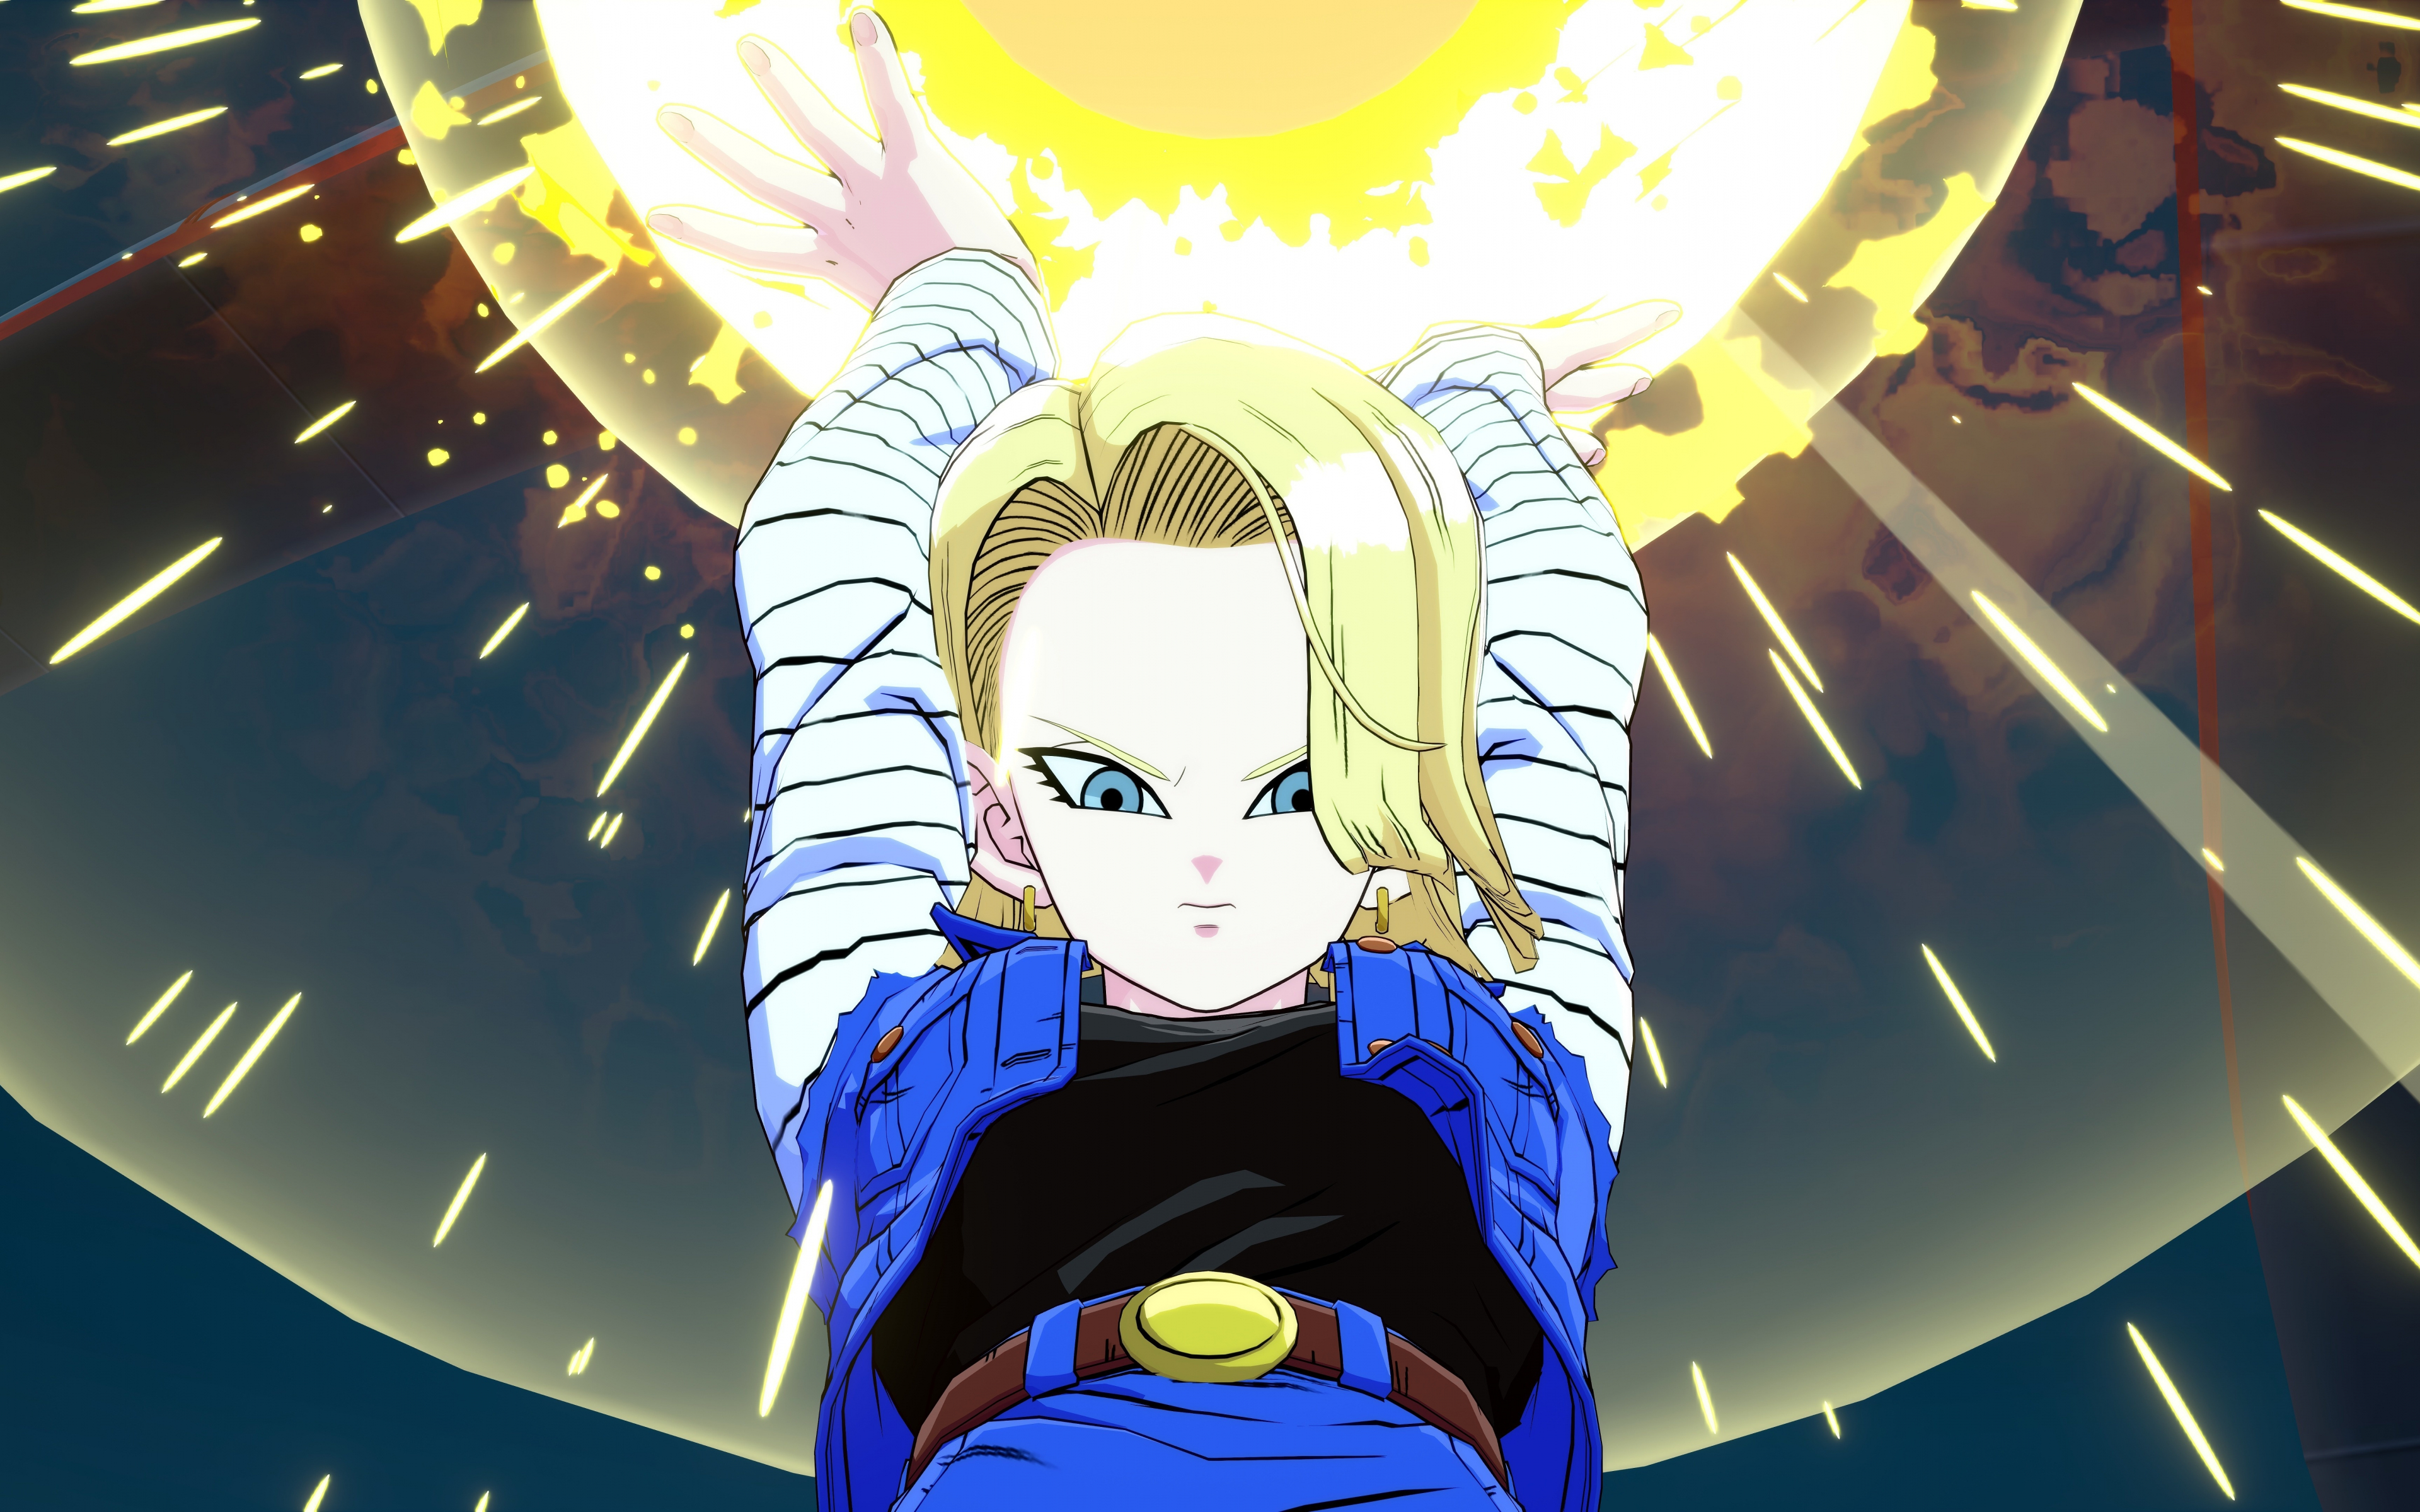 71 listings of hd dragon ball super 4k wallpaper picture for desktop, tablet & mobile device. Download 3840x2400 wallpaper android 18, dragon ball ...